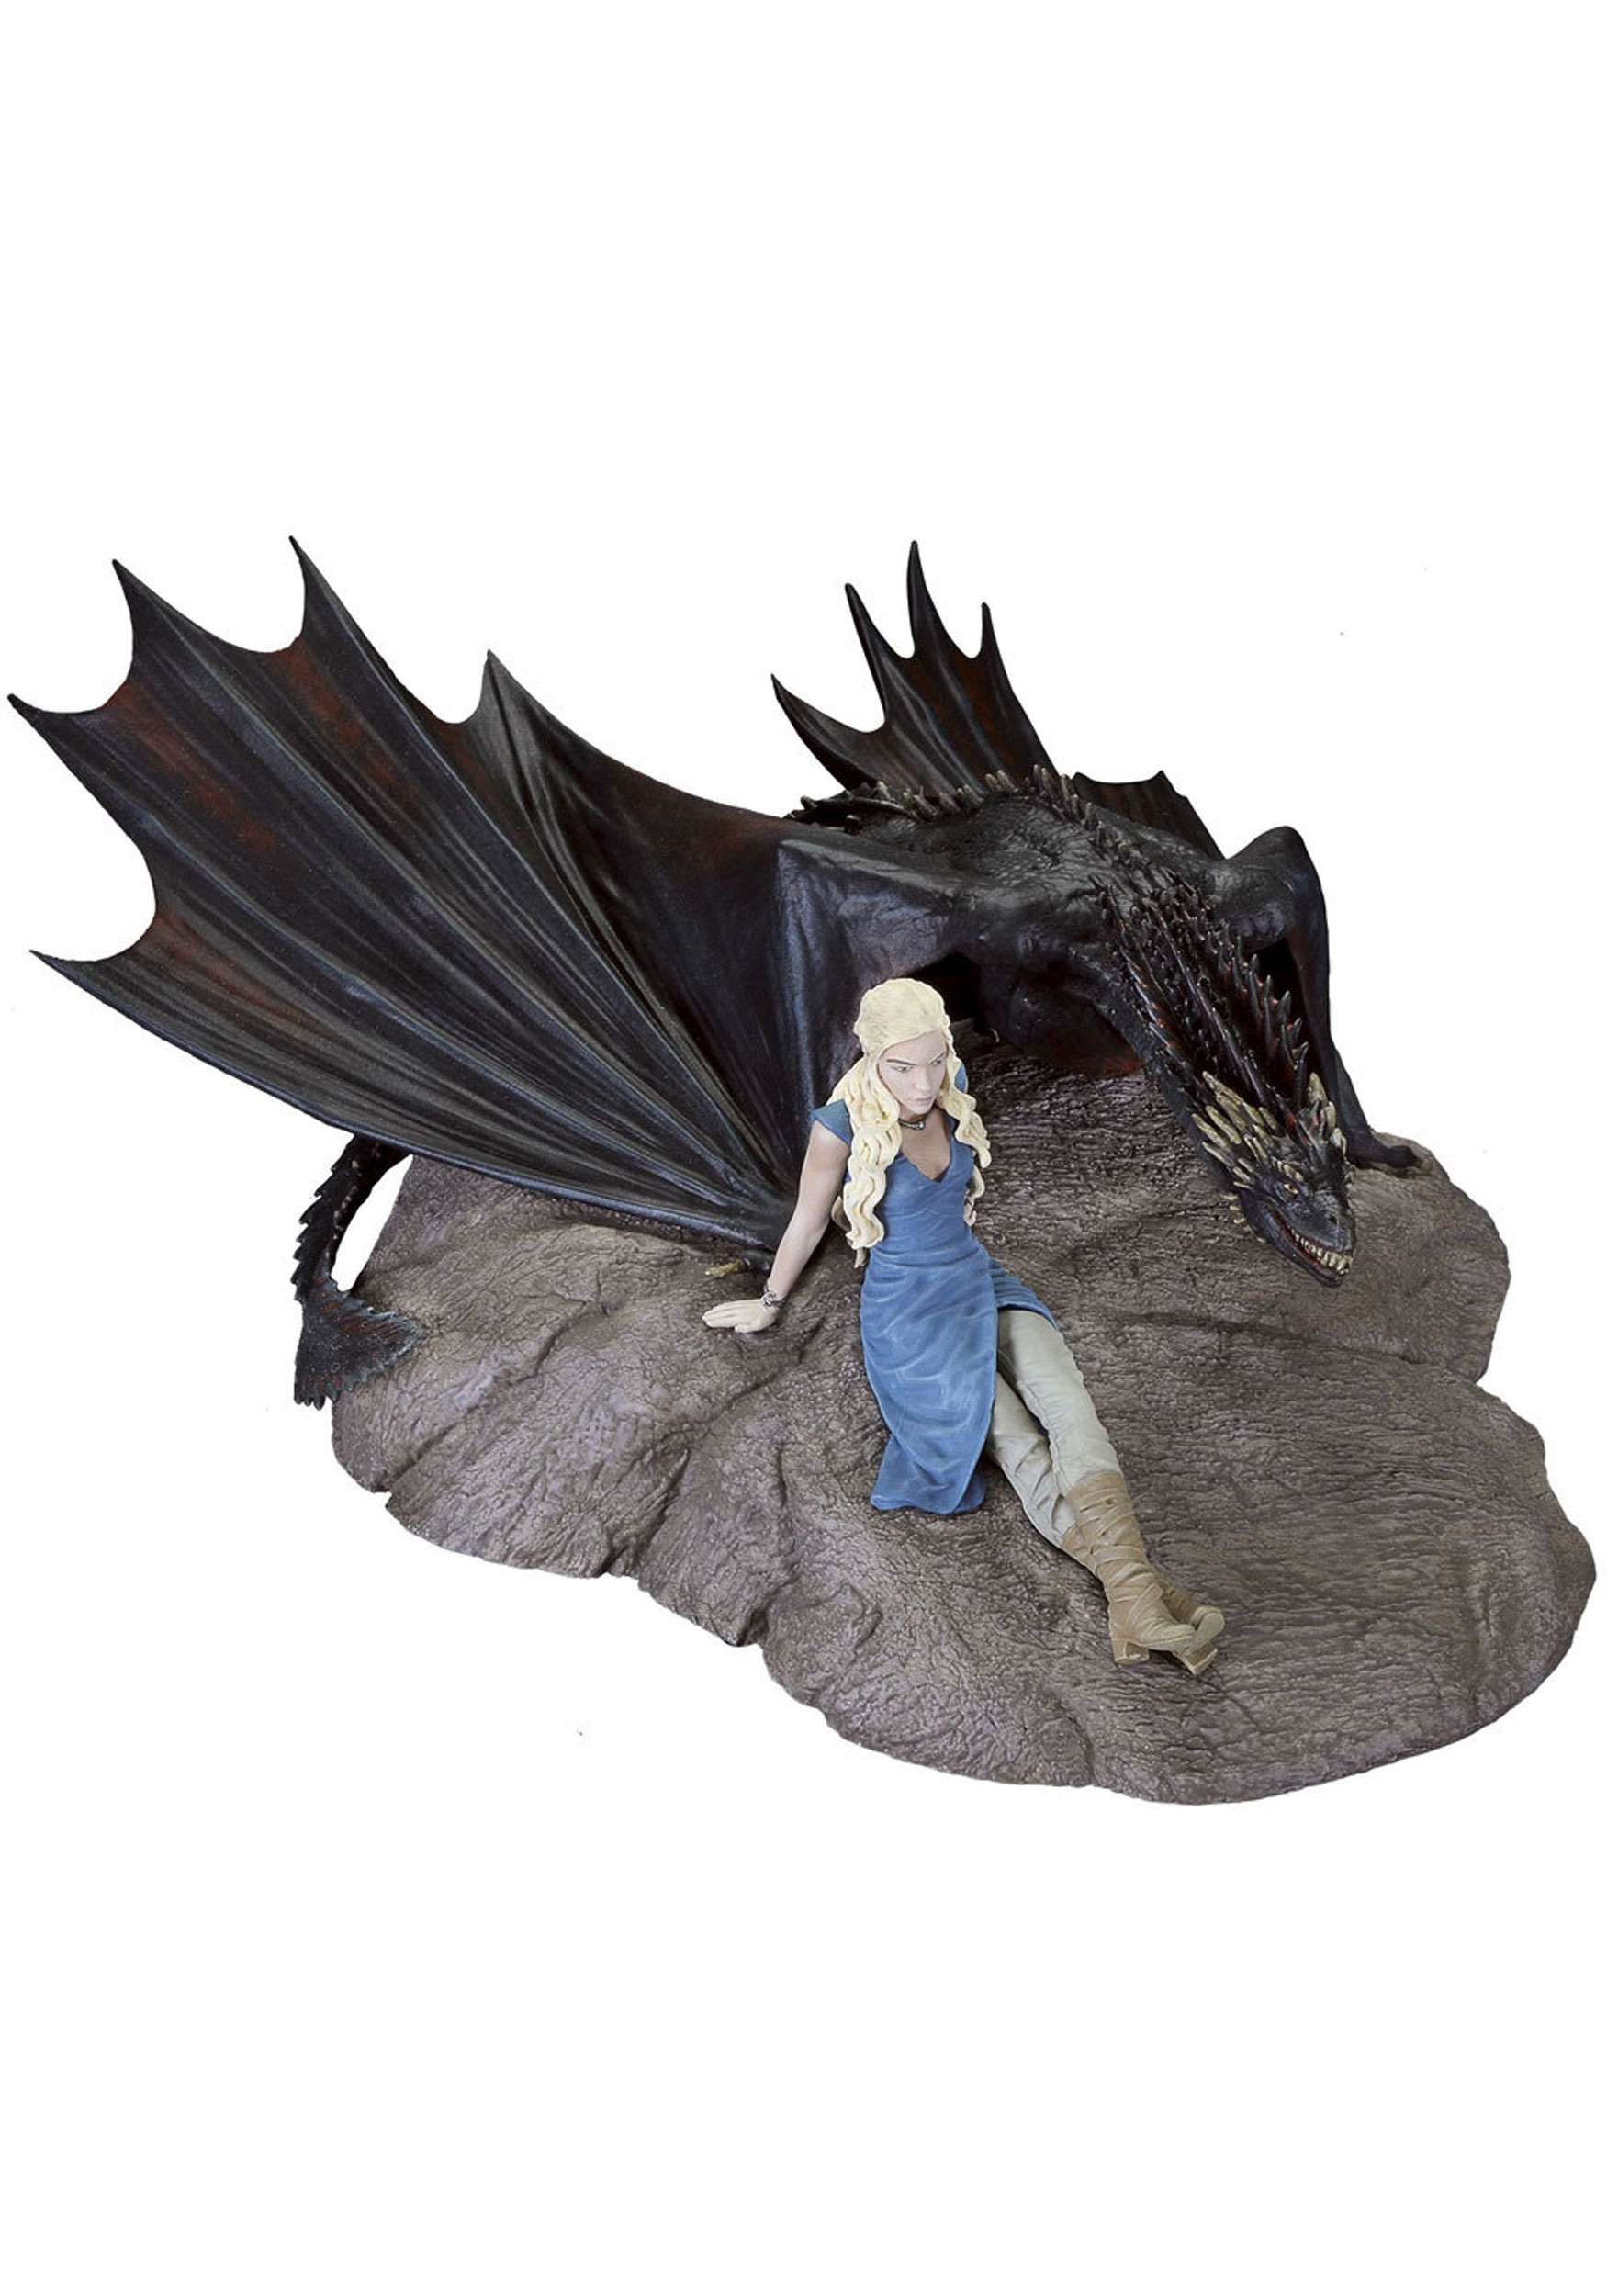 Game of Thrones Daenerys and Drogon Statuette DHC28-574